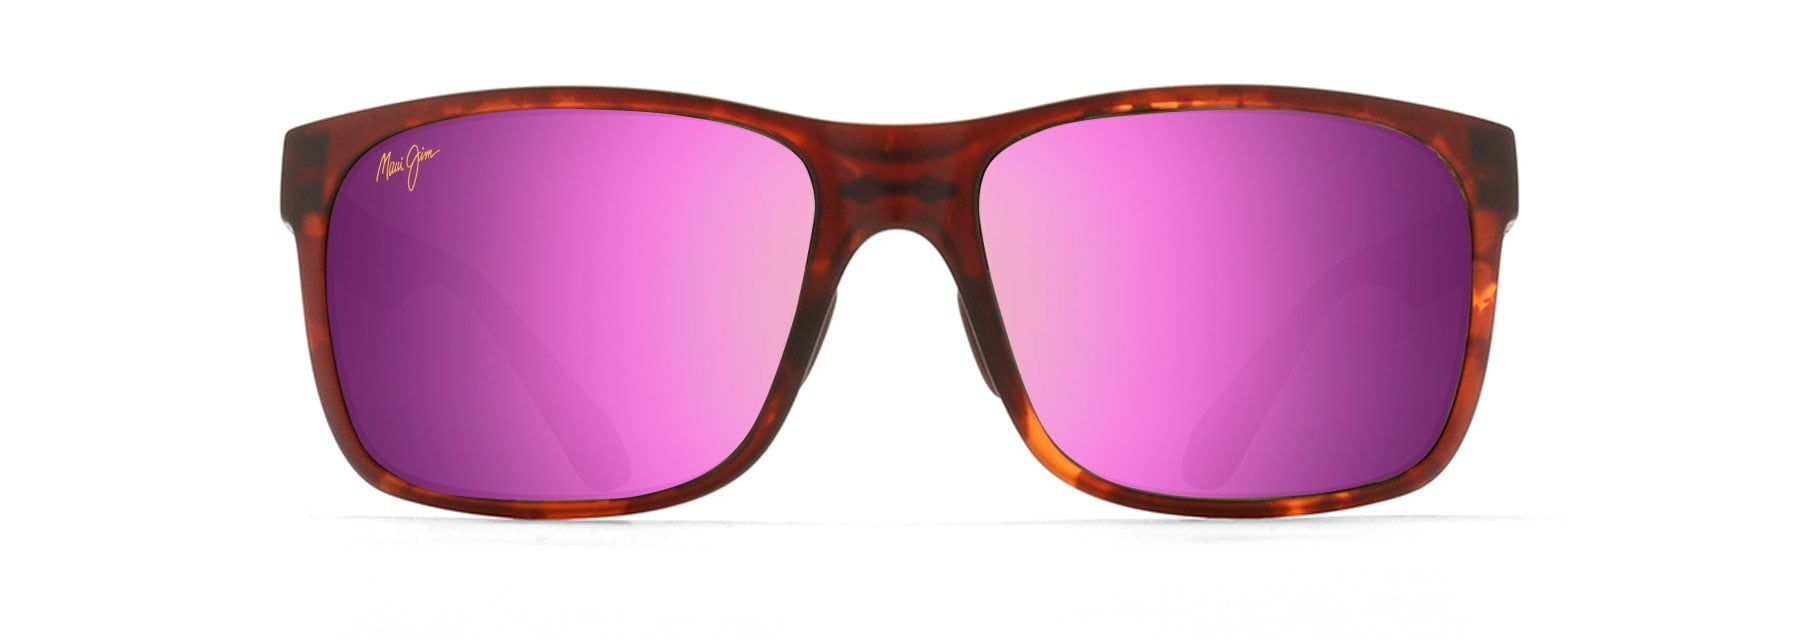 MyMaui Red Sands MM432-036 Sunglasses